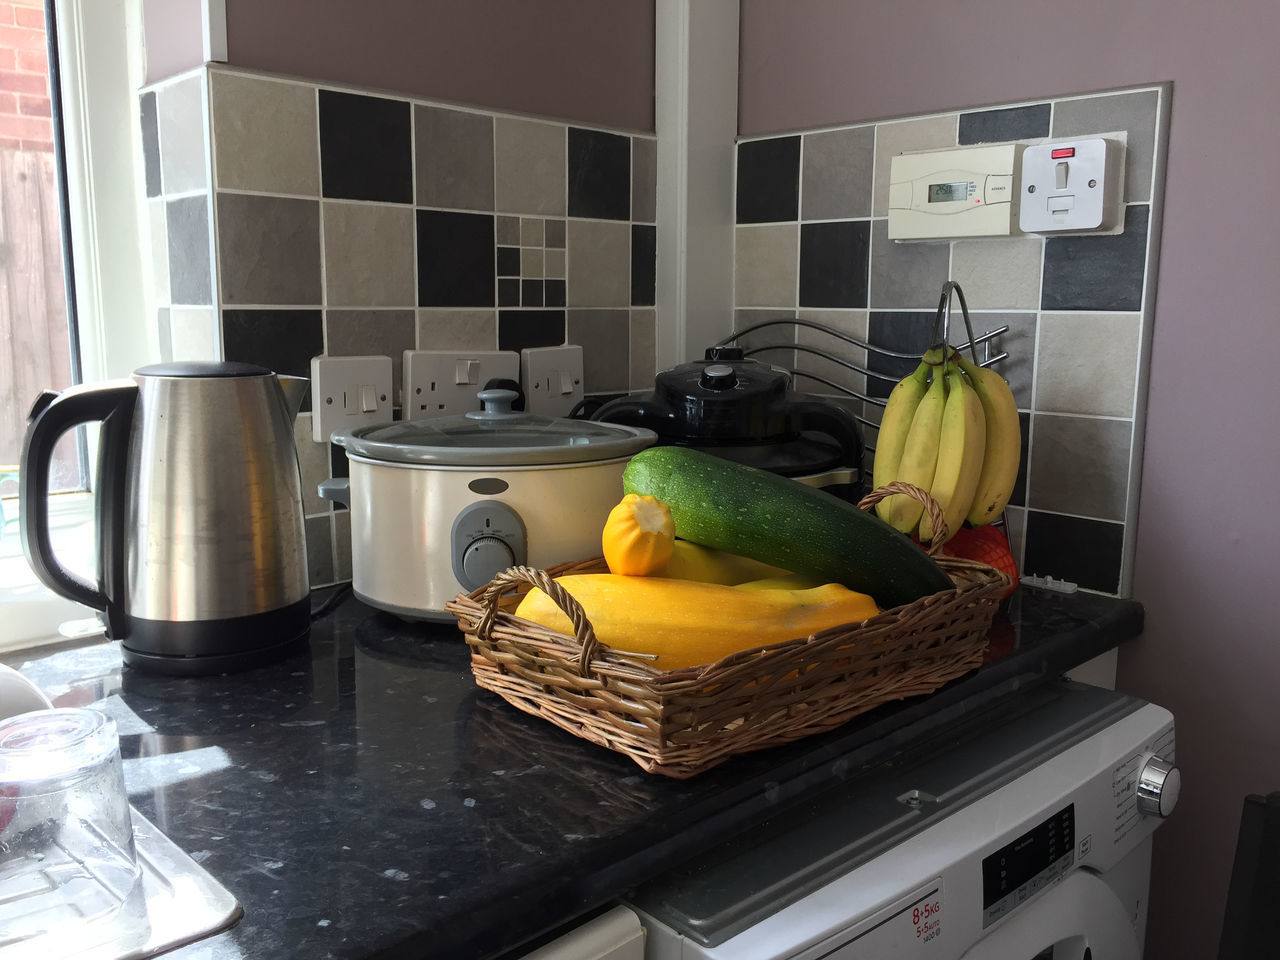 FRUITS AND VEGETABLES ON KITCHEN AT HOME